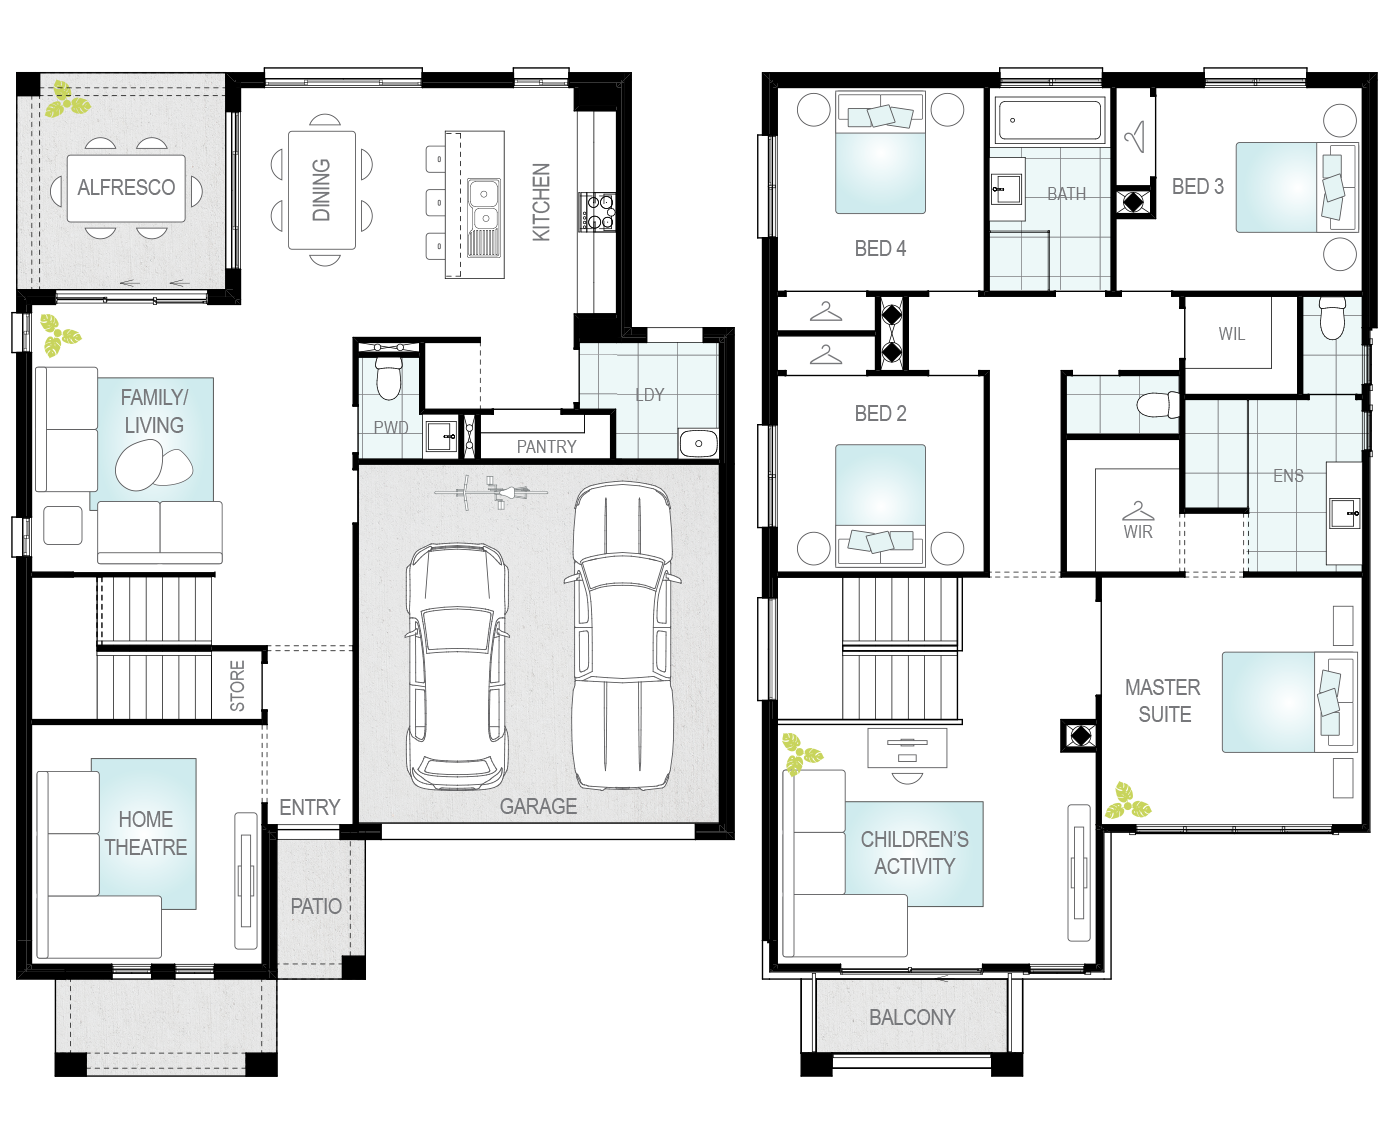 Lurento Two floor plan_1.png